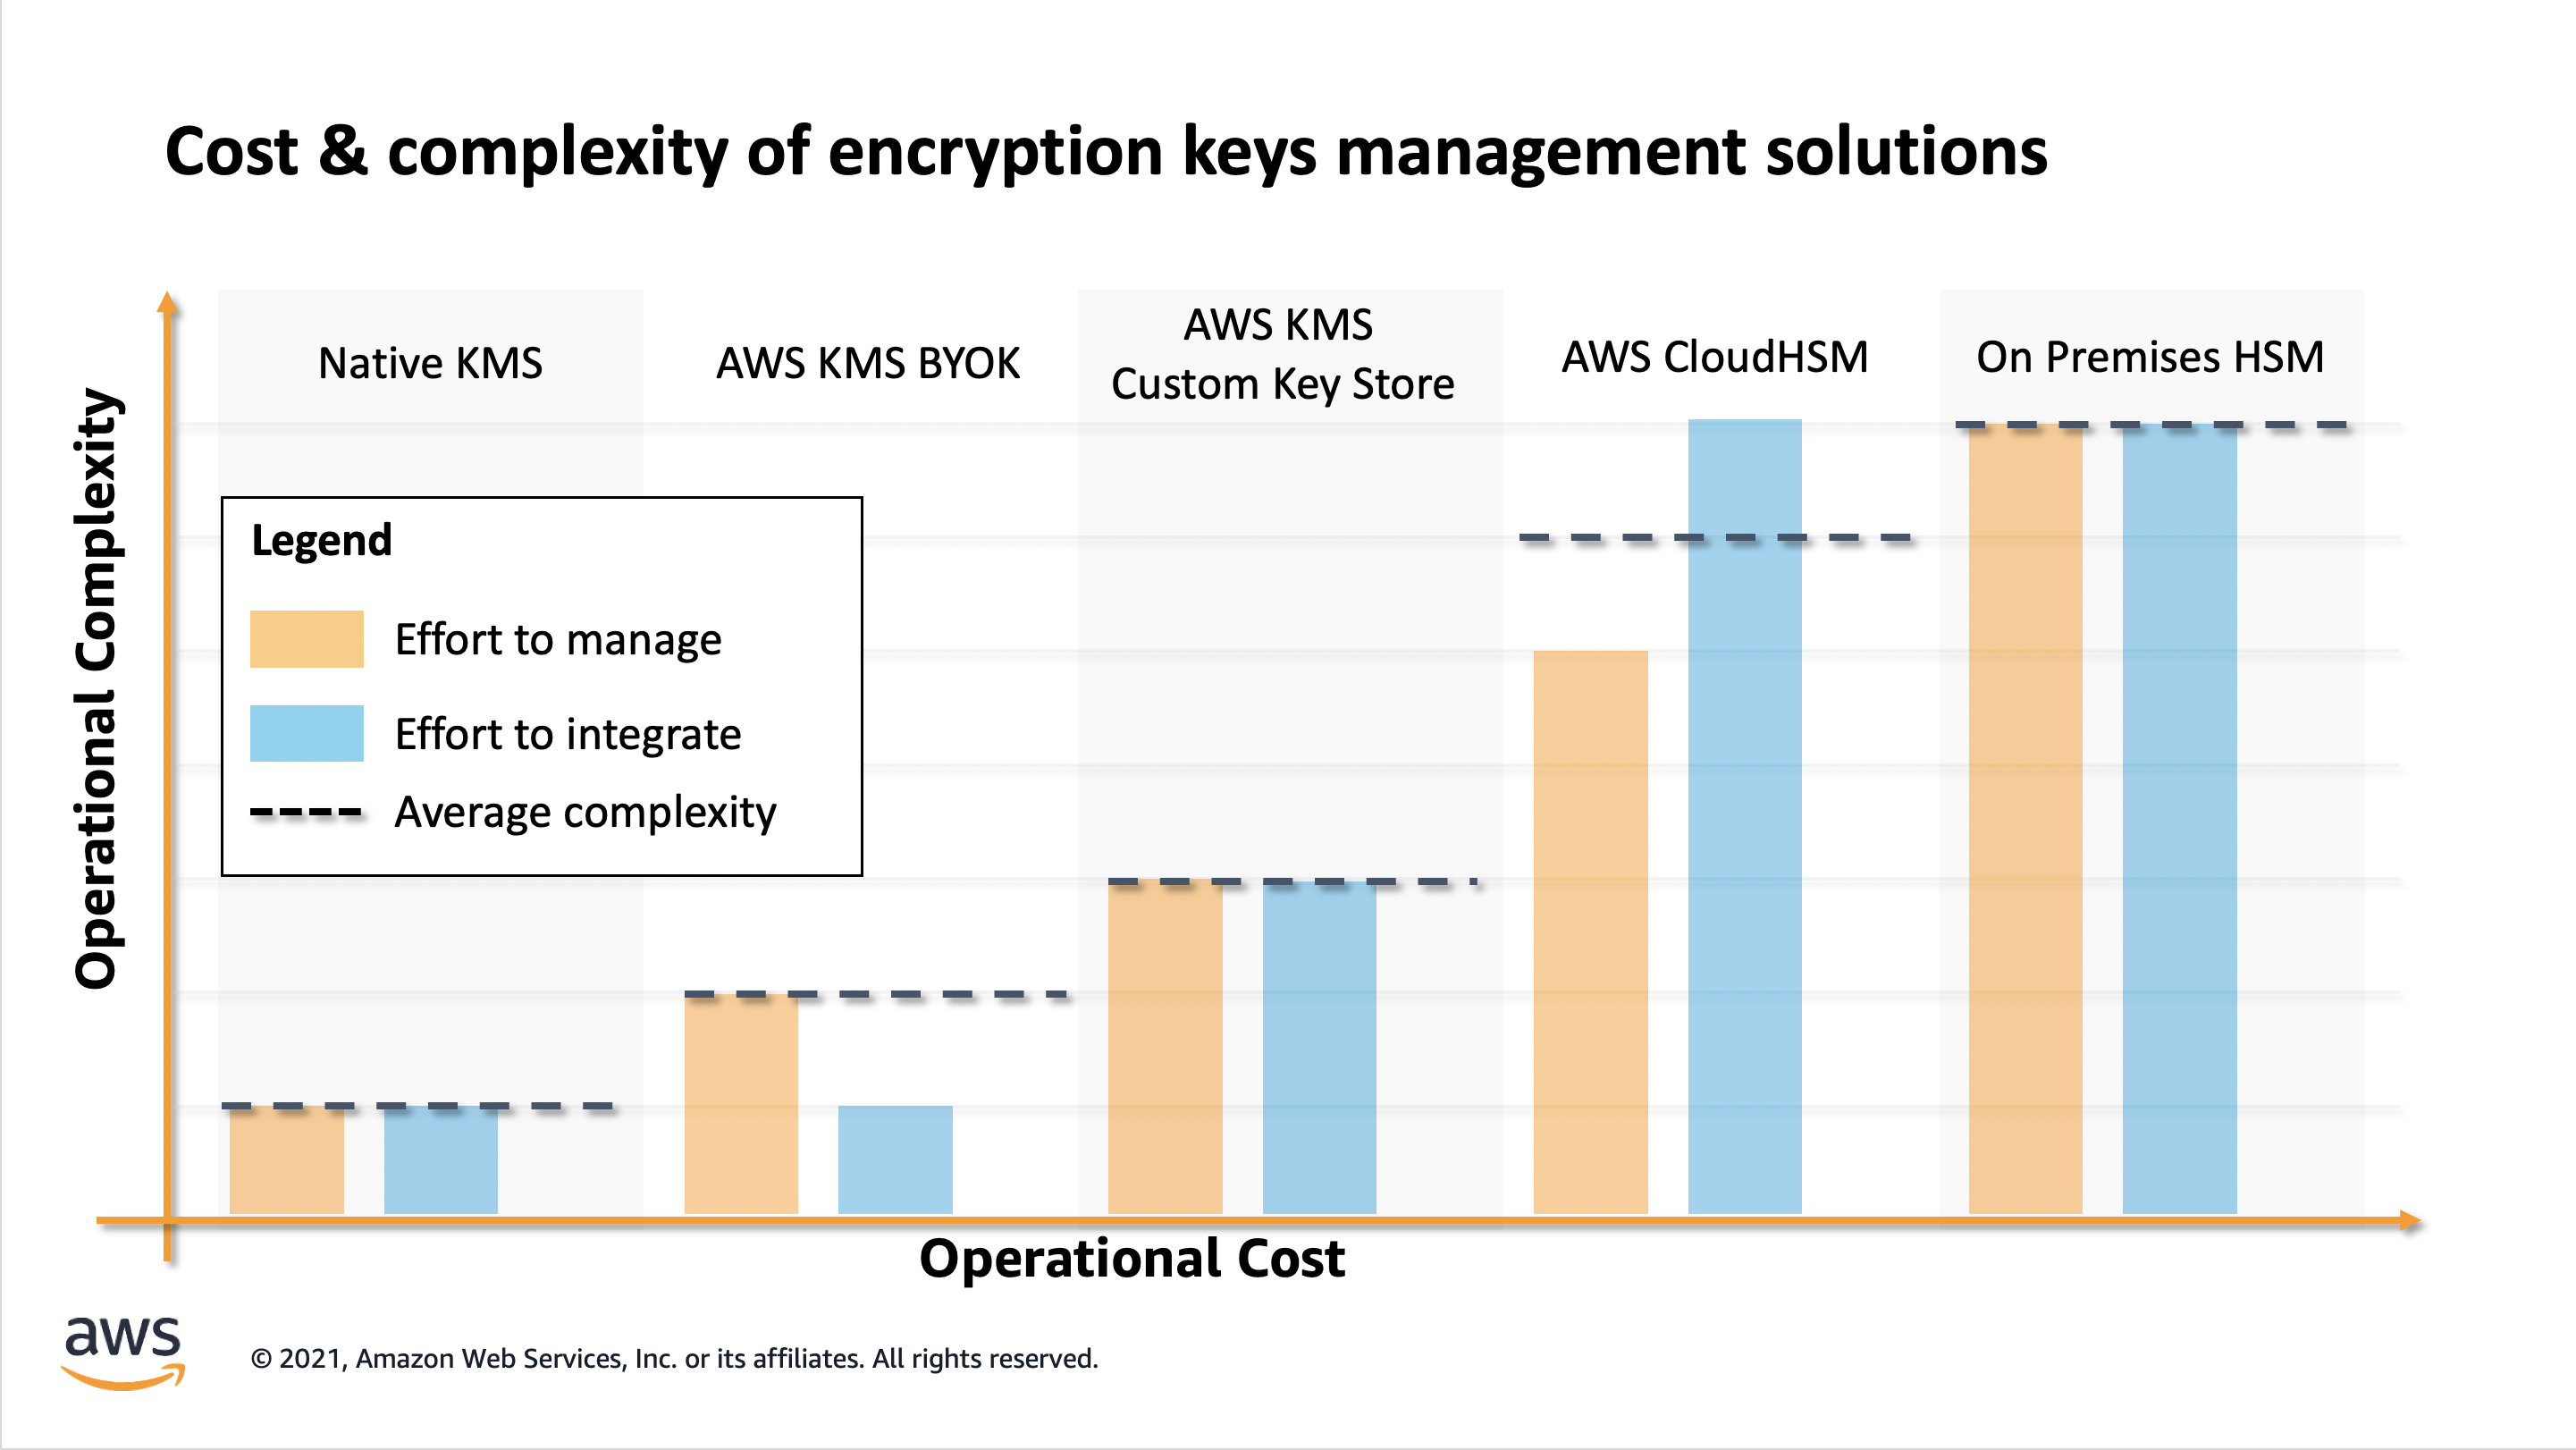 Figure 1: Comparison of key management solutions and their relative cost